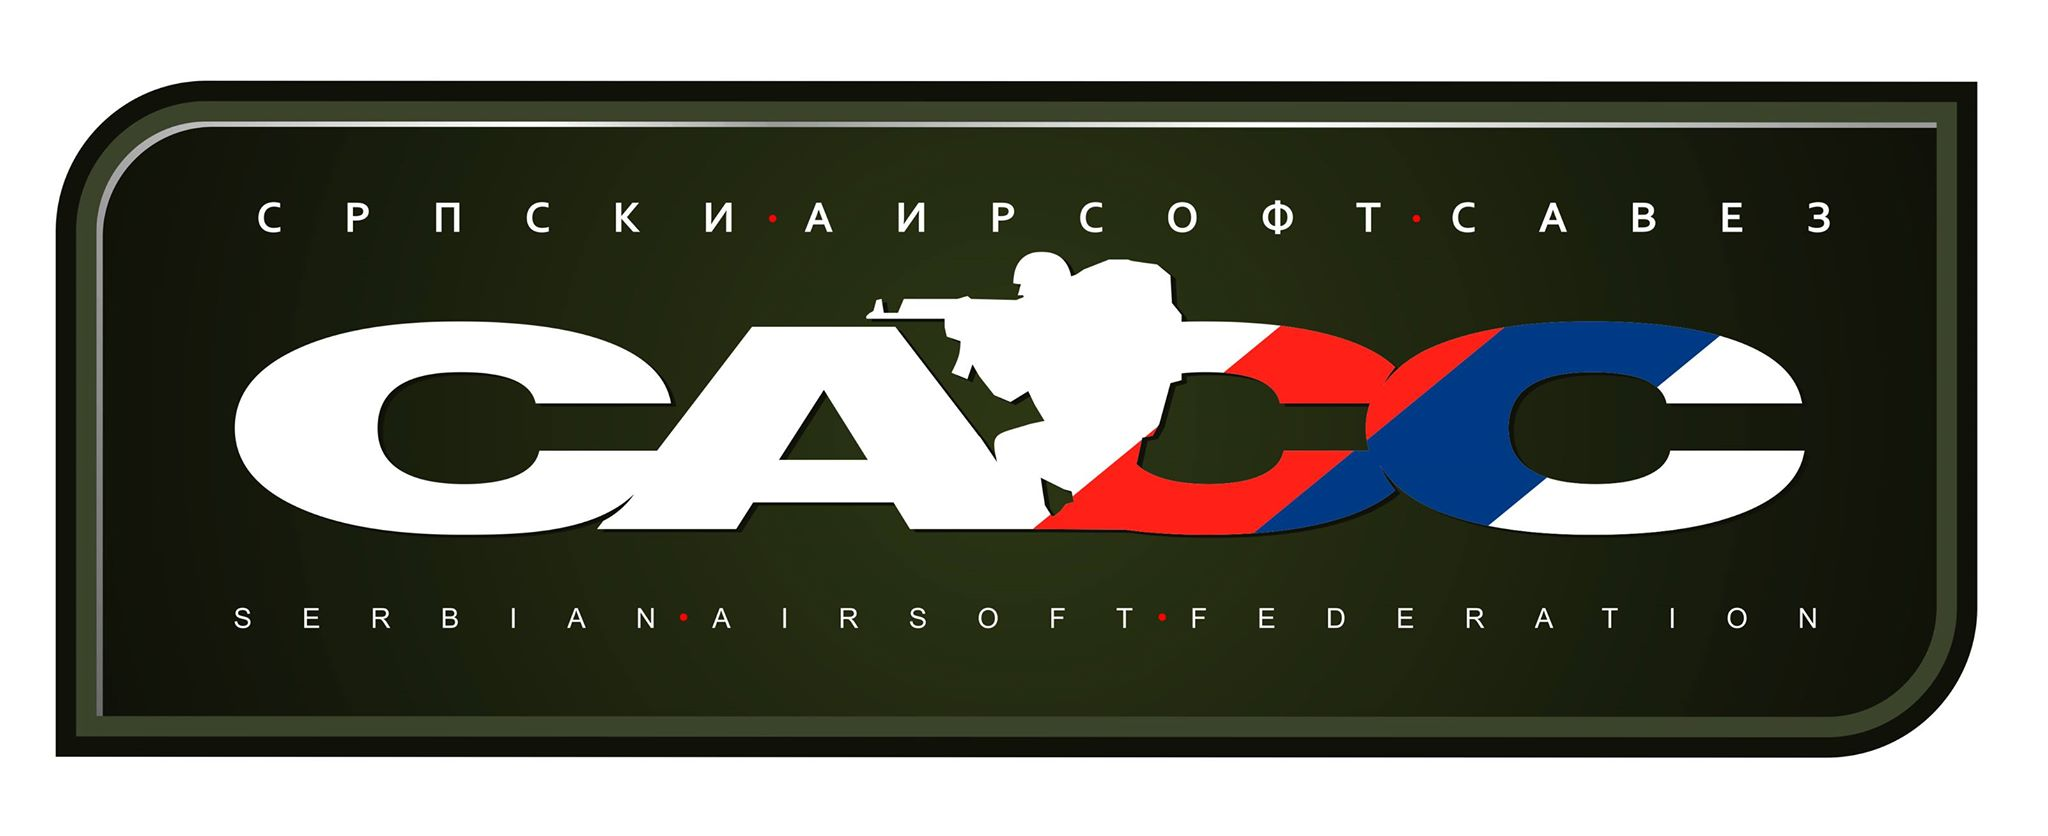 Serbian Airsoft association